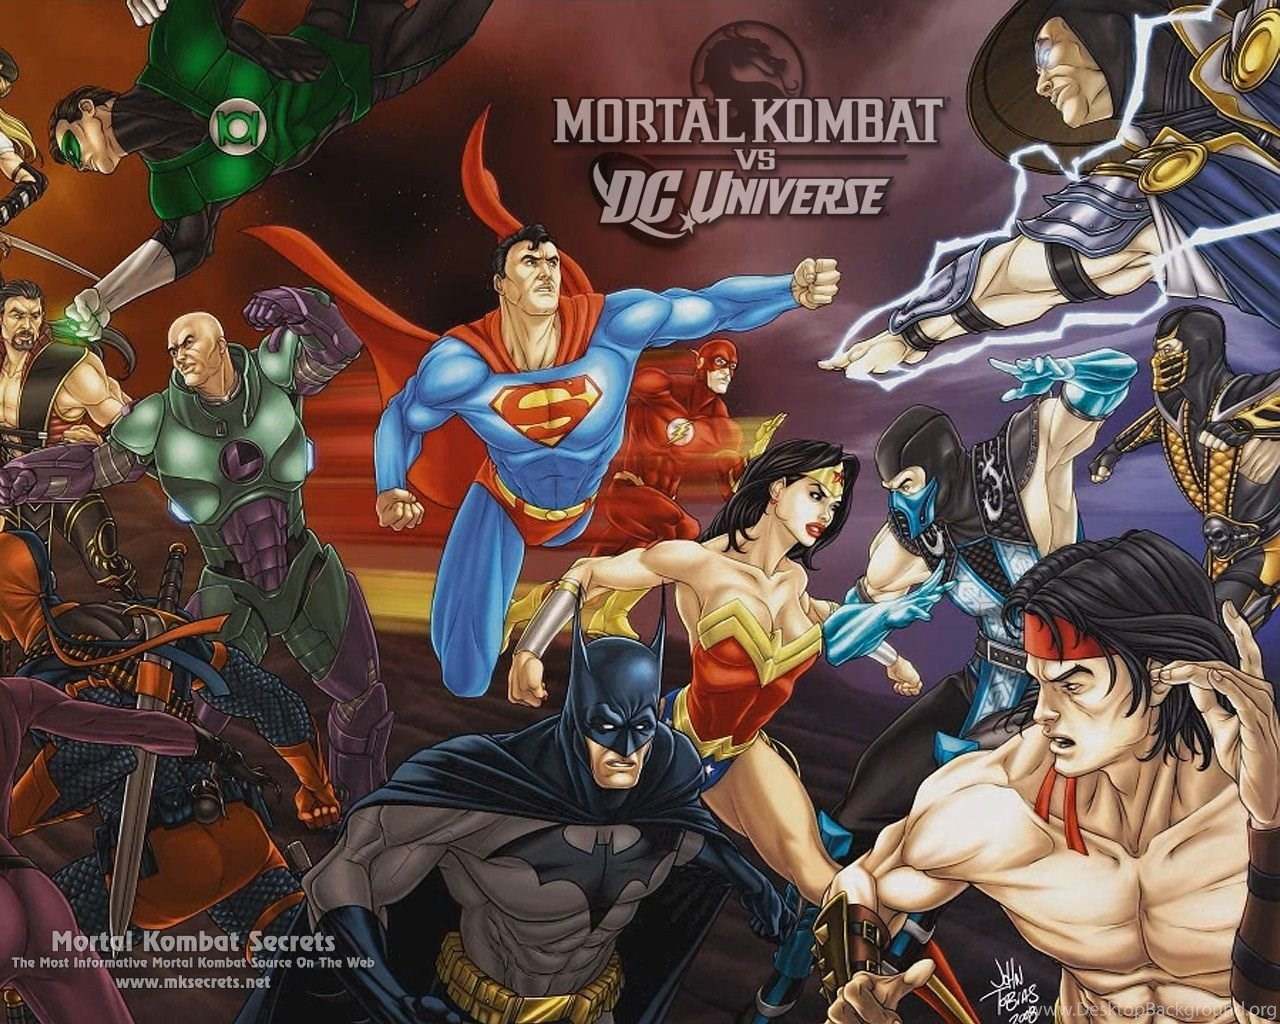 Mortal Kombat VS  DC Universe News Mortal Kombat Secrets